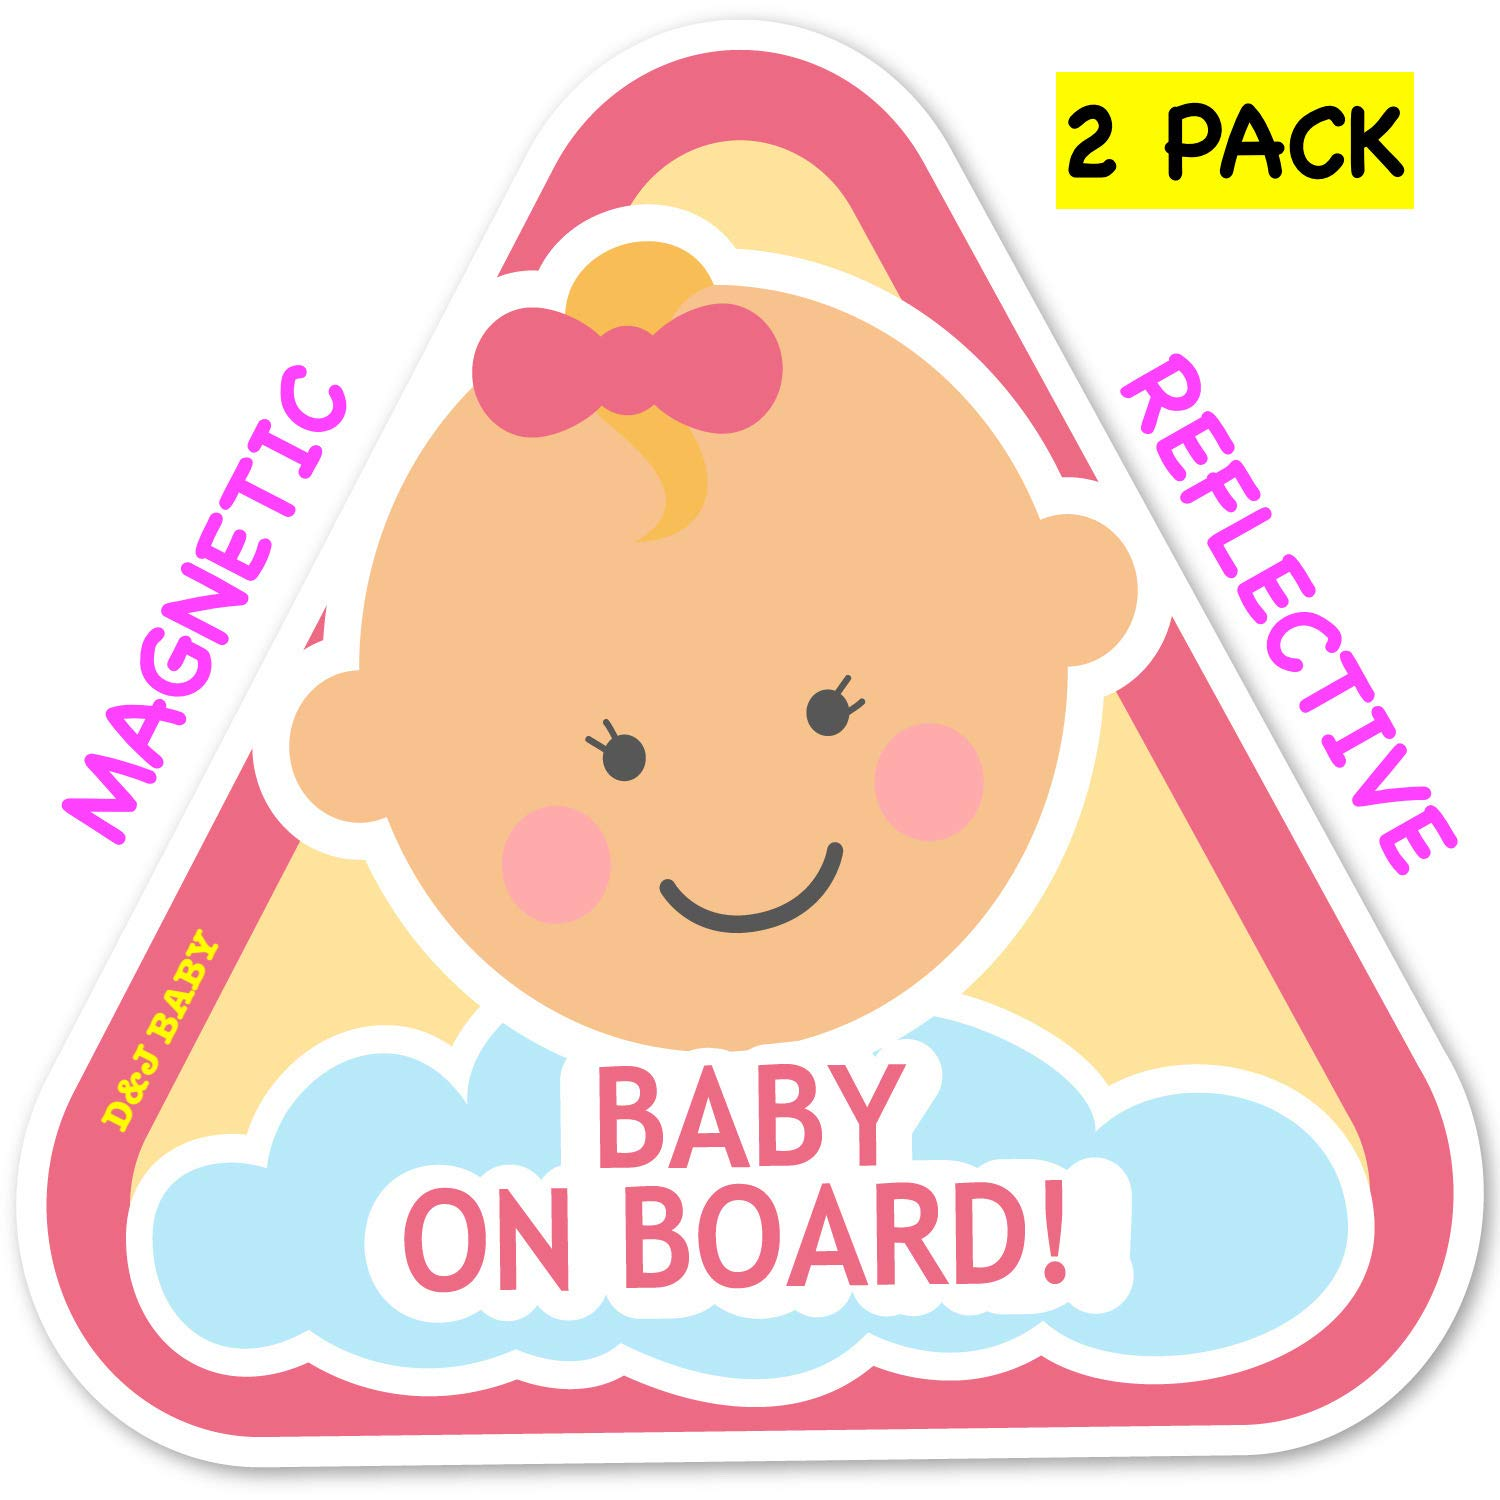 New: Baby on Board Magnetic and Reflective Sign for Car (2 Pack) (Baby Girl) D&J International